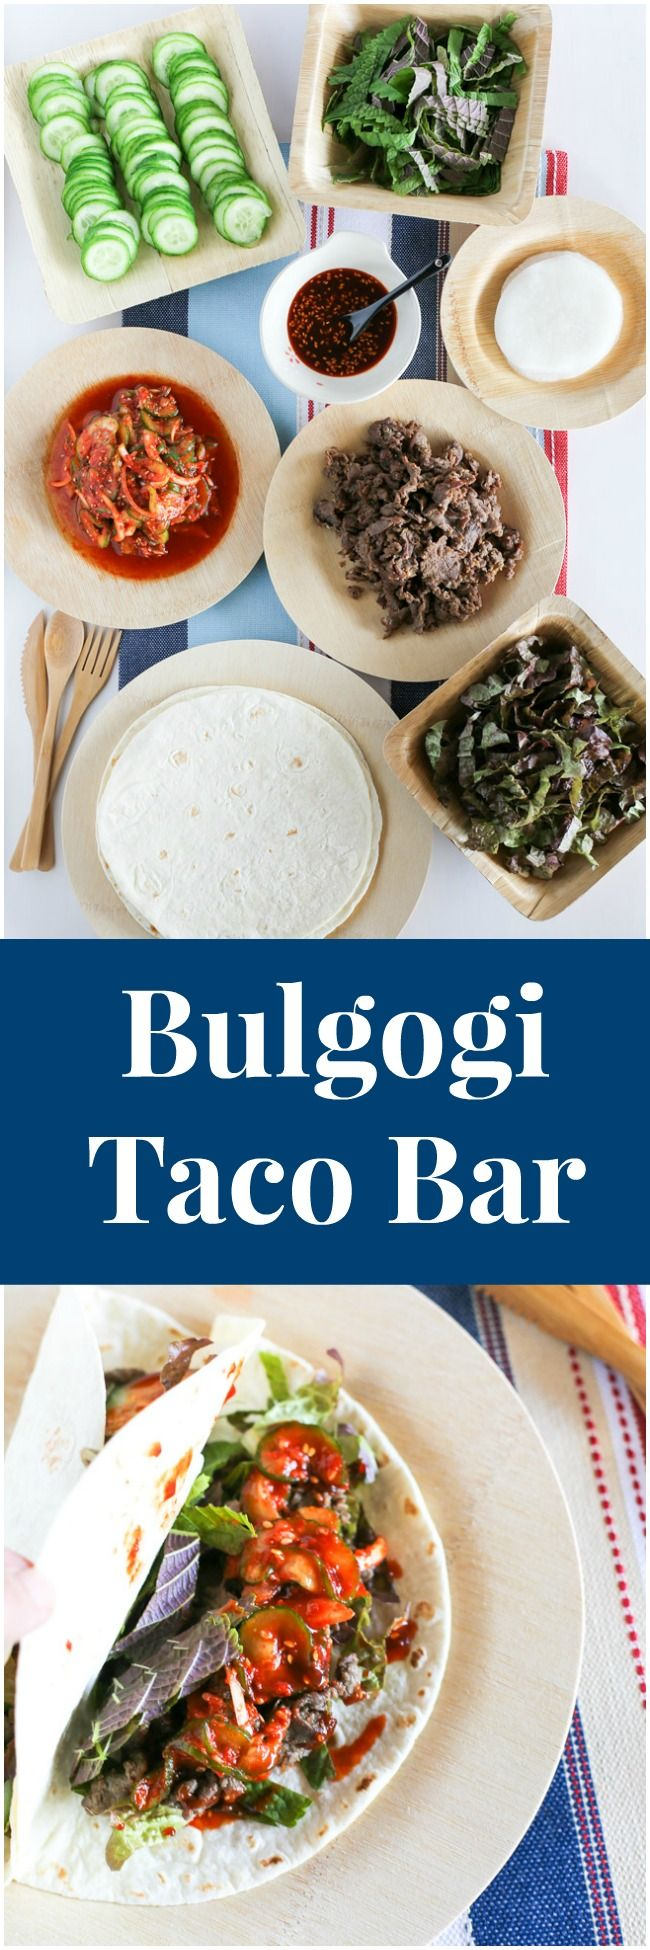 Korean bulgogi taco bar: Mexican fused but loaded with authentic Korean flavour!| MyKoreanKitchen.com